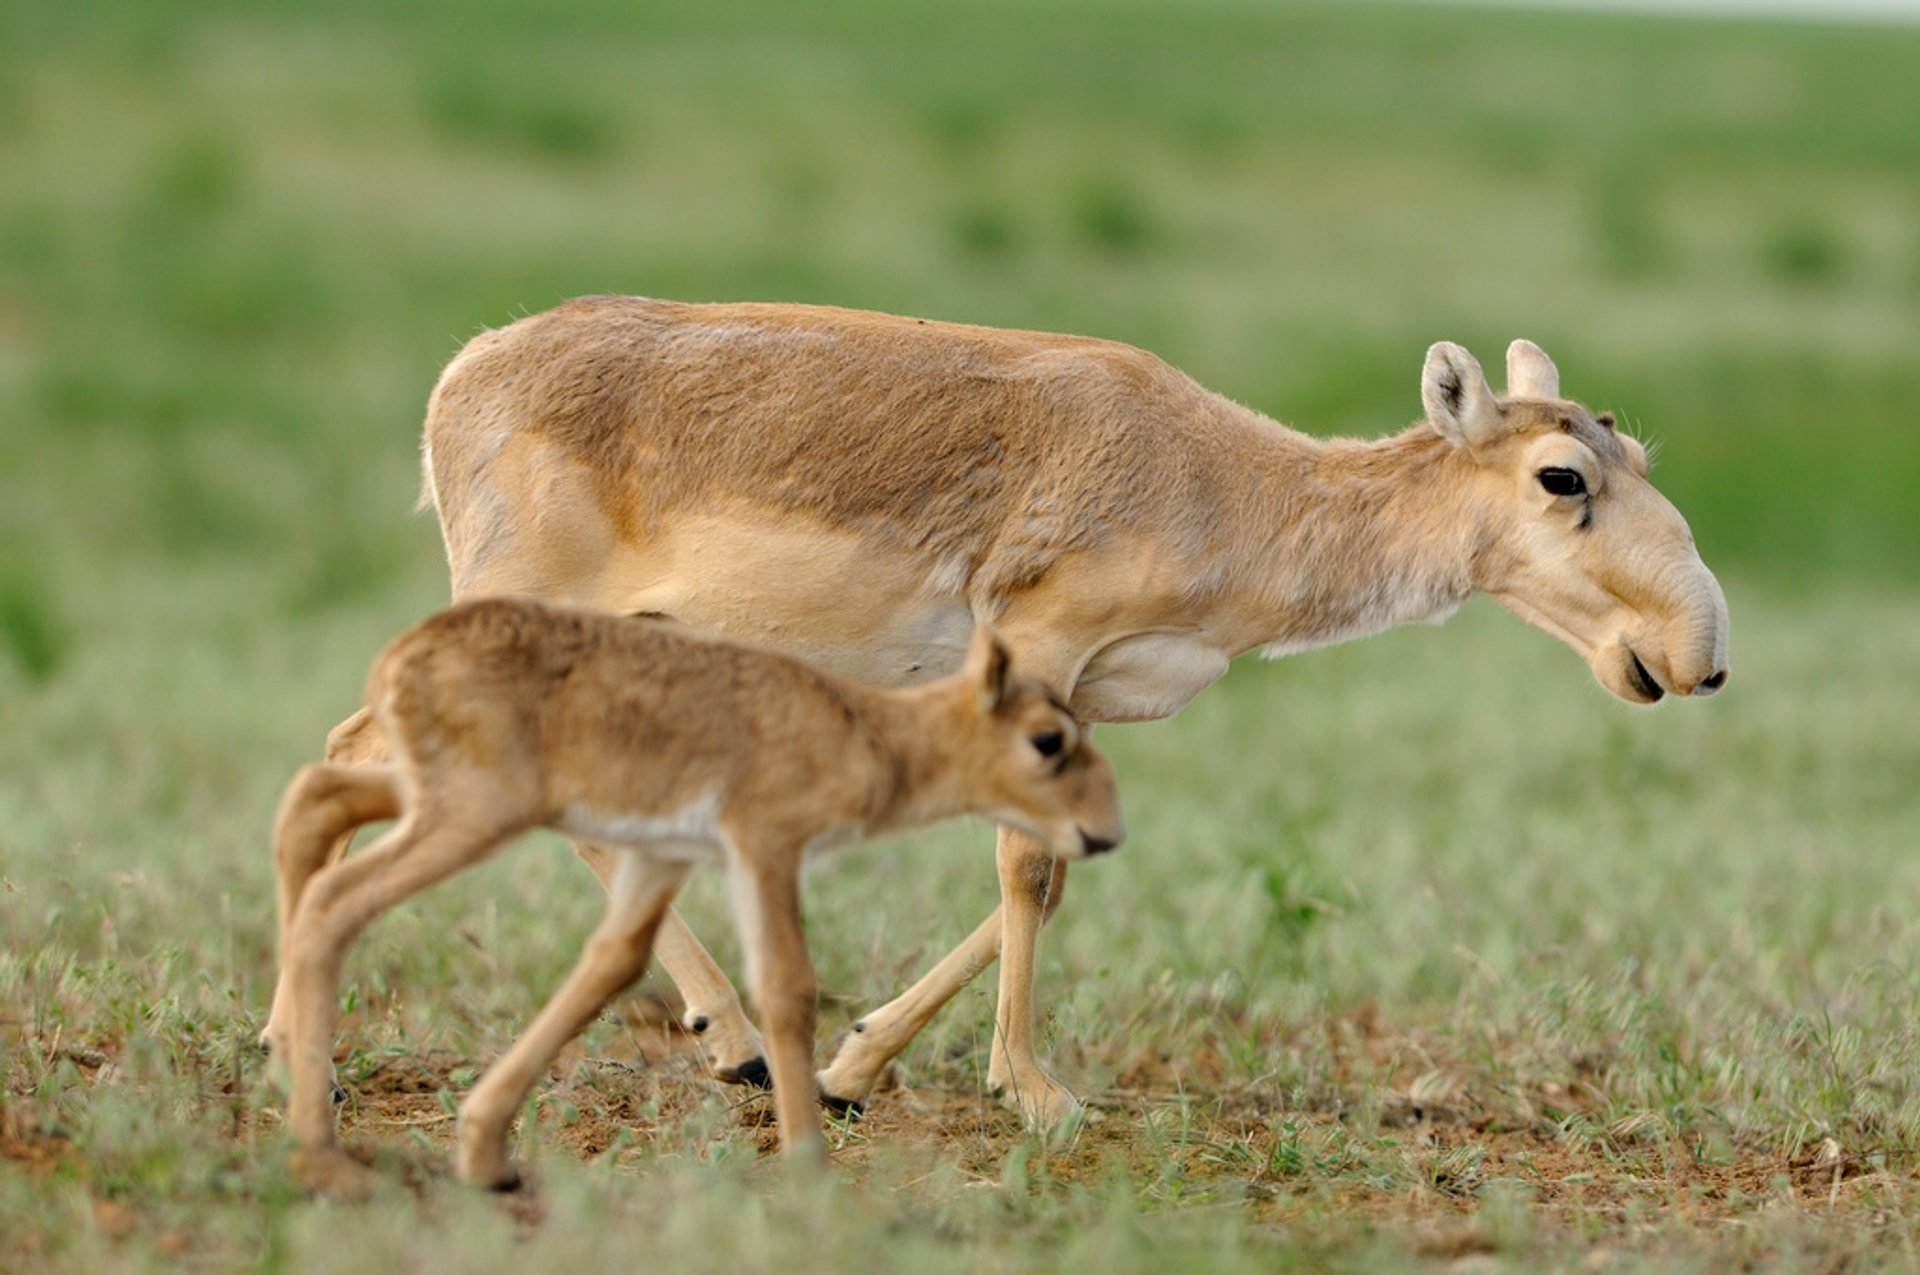 Saiga Antelopes in Kazakhstan 2019 - Best Time